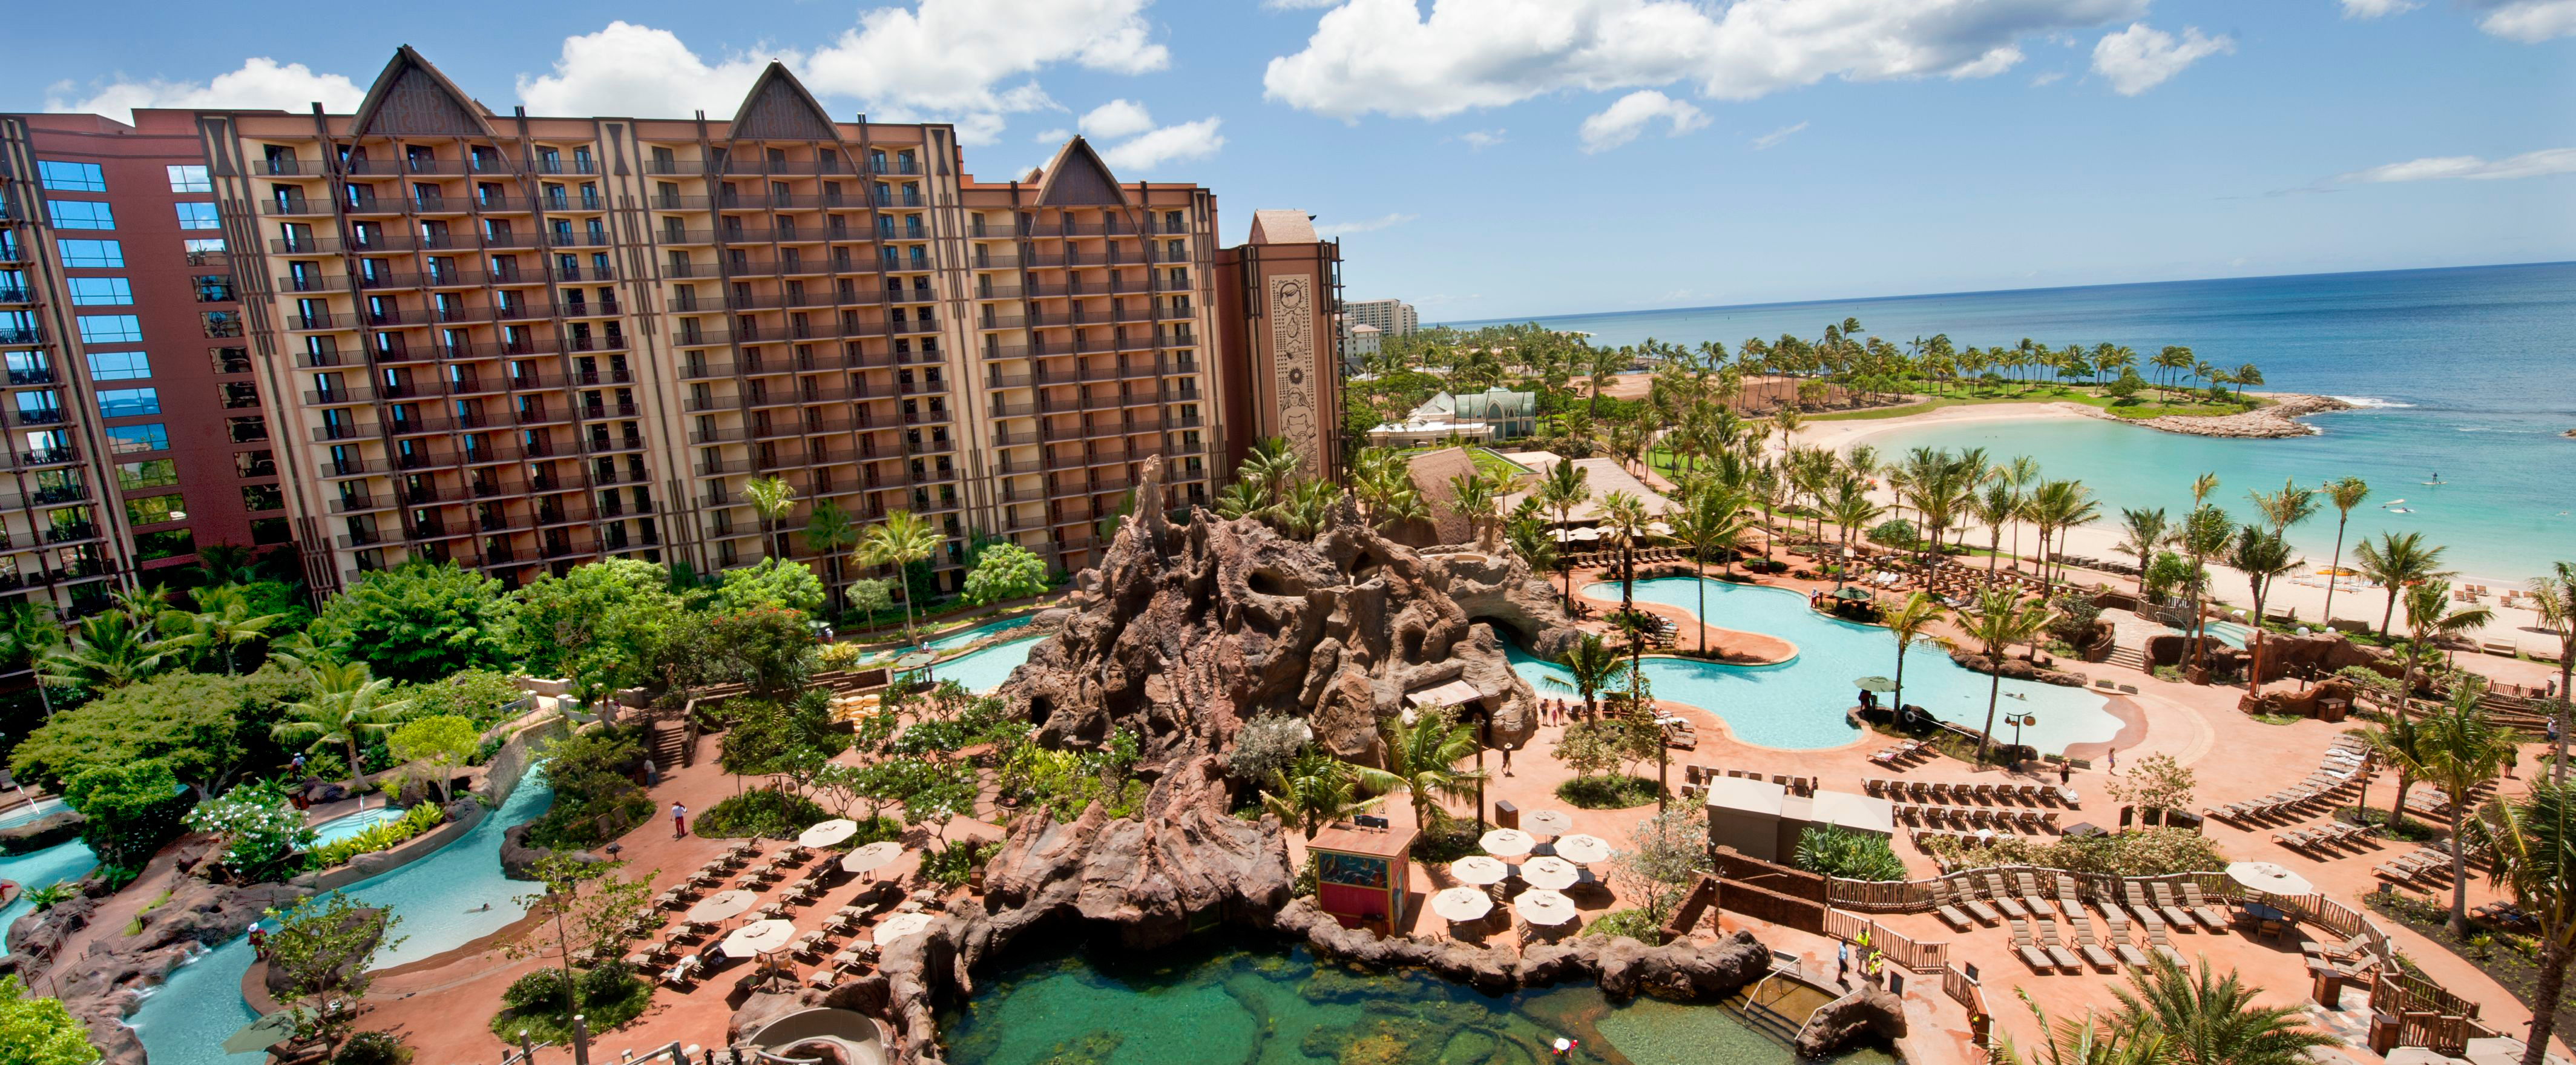 Disney Aulani Room Reservations